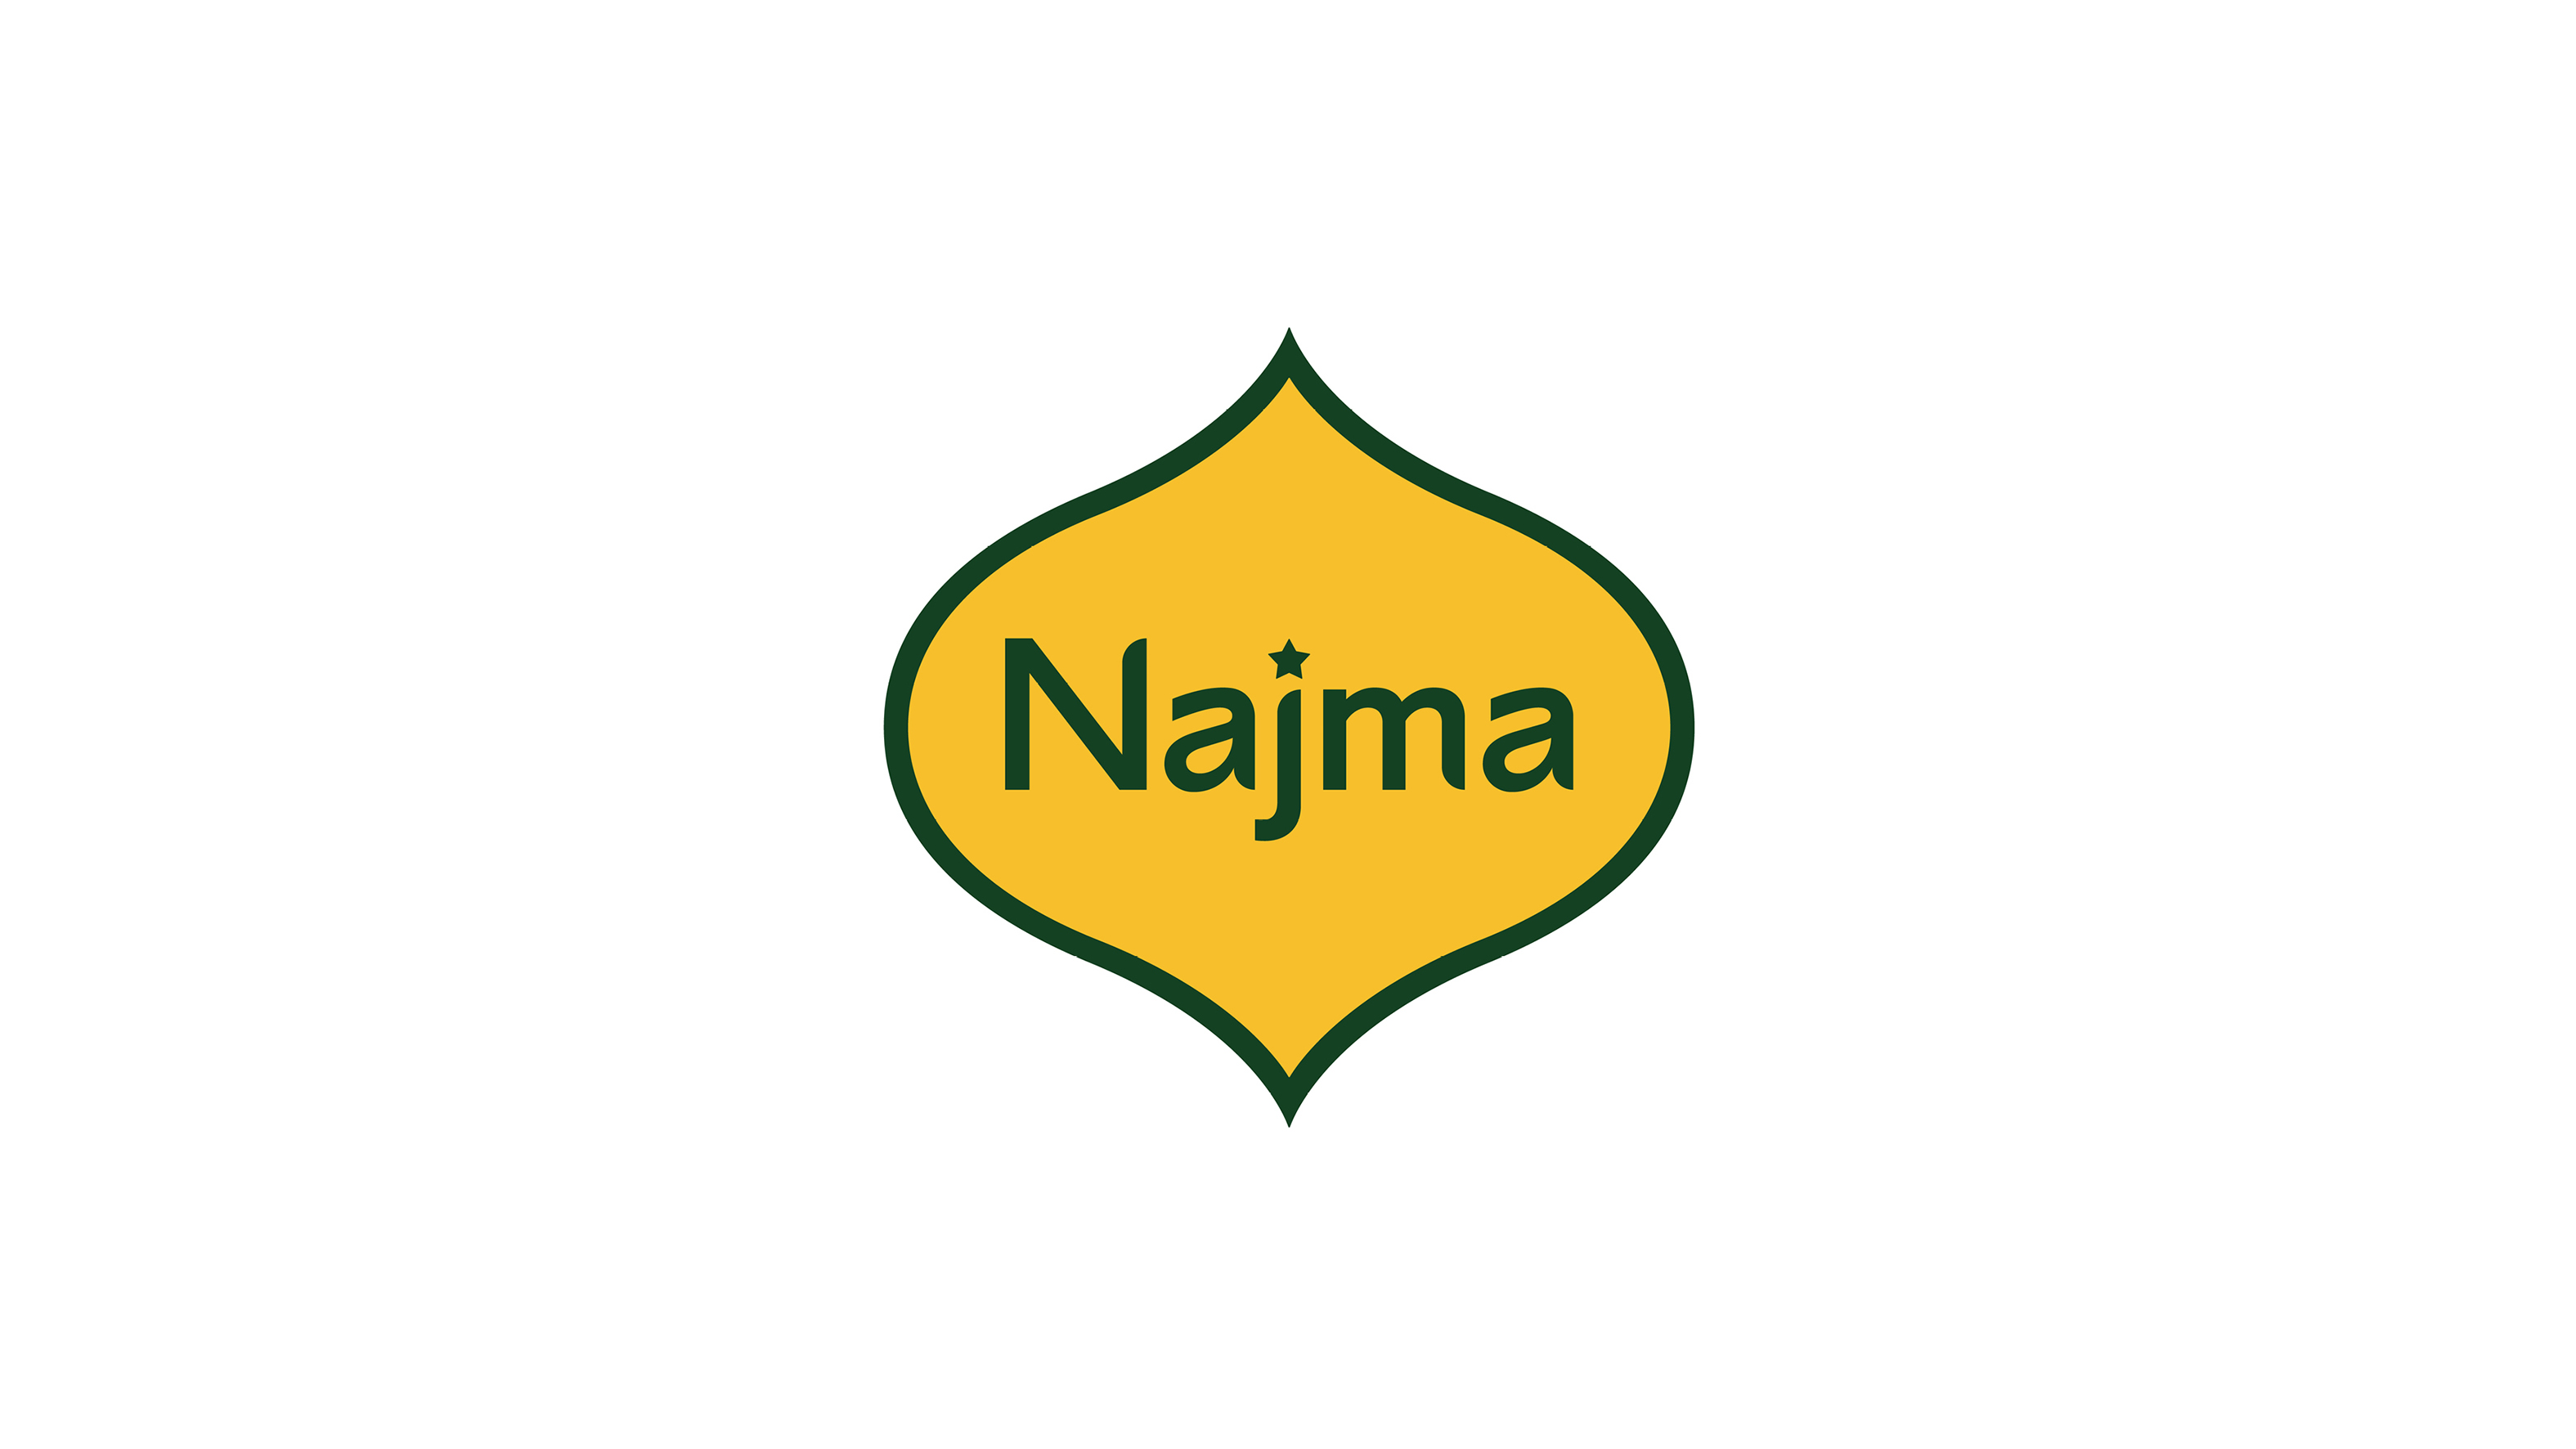 Najma from Product Range to Stand-Out Brand by StormBrands